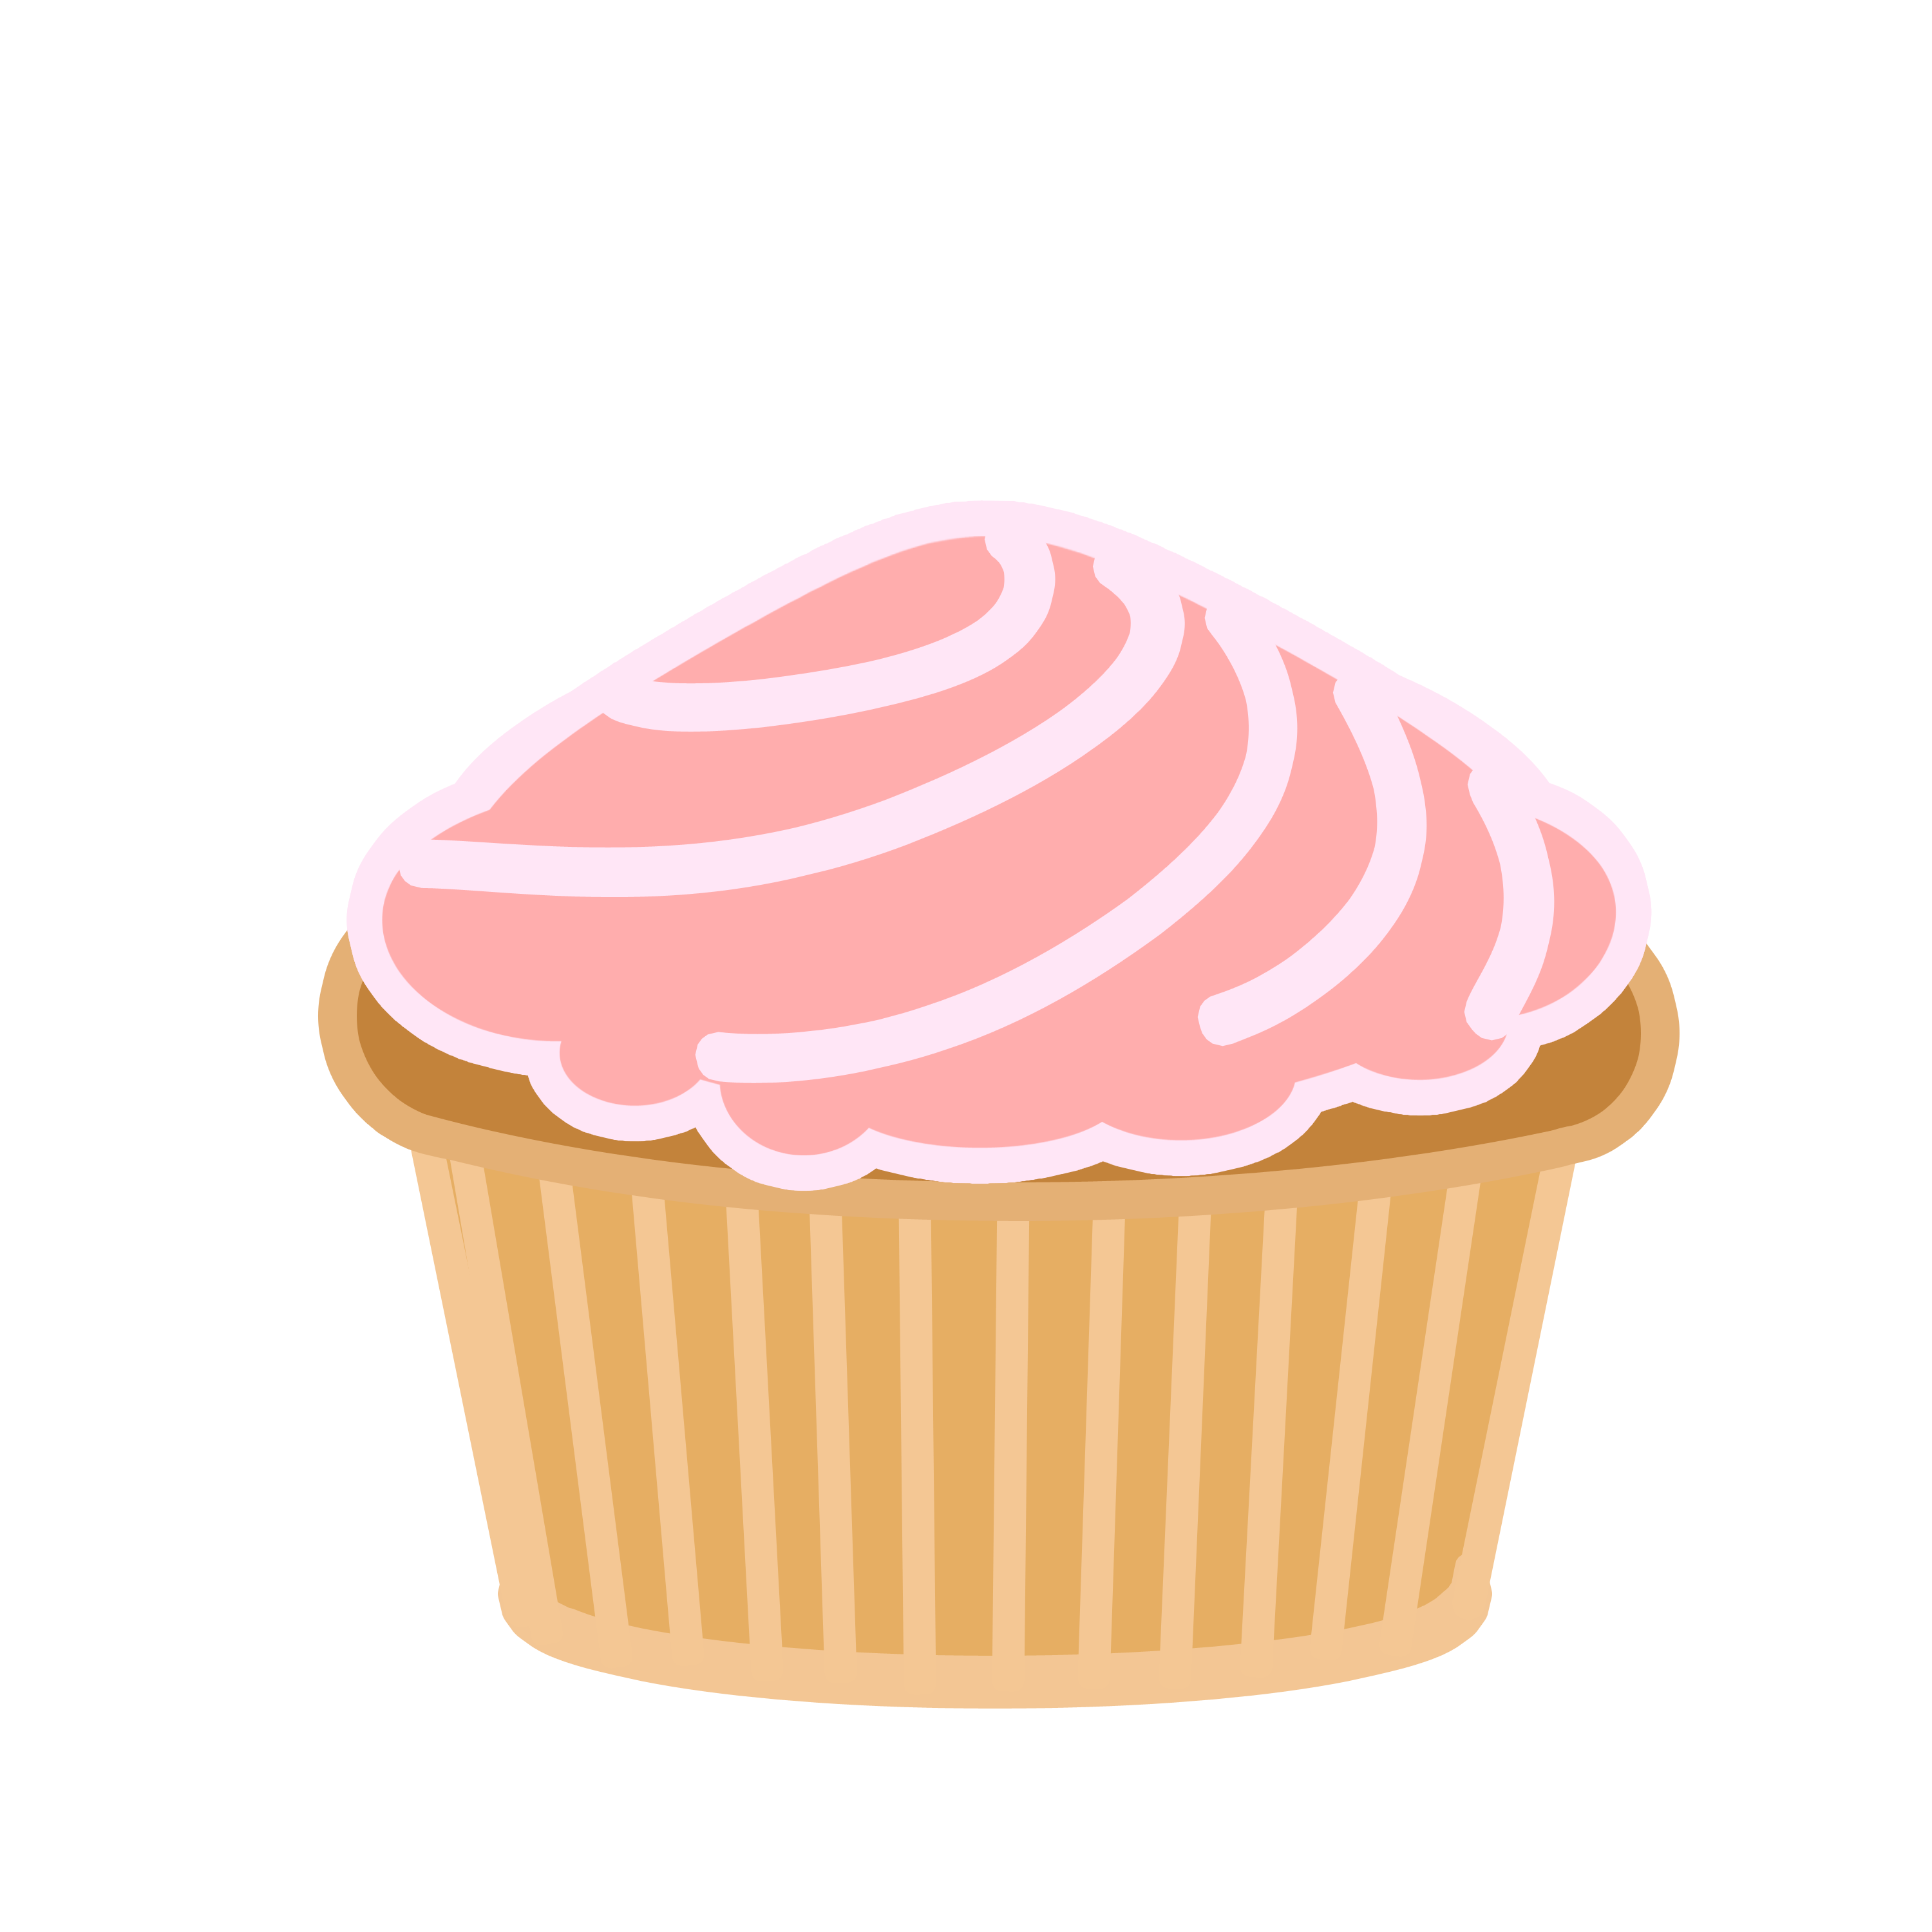 Pink Swirl Cupcake by Quick.